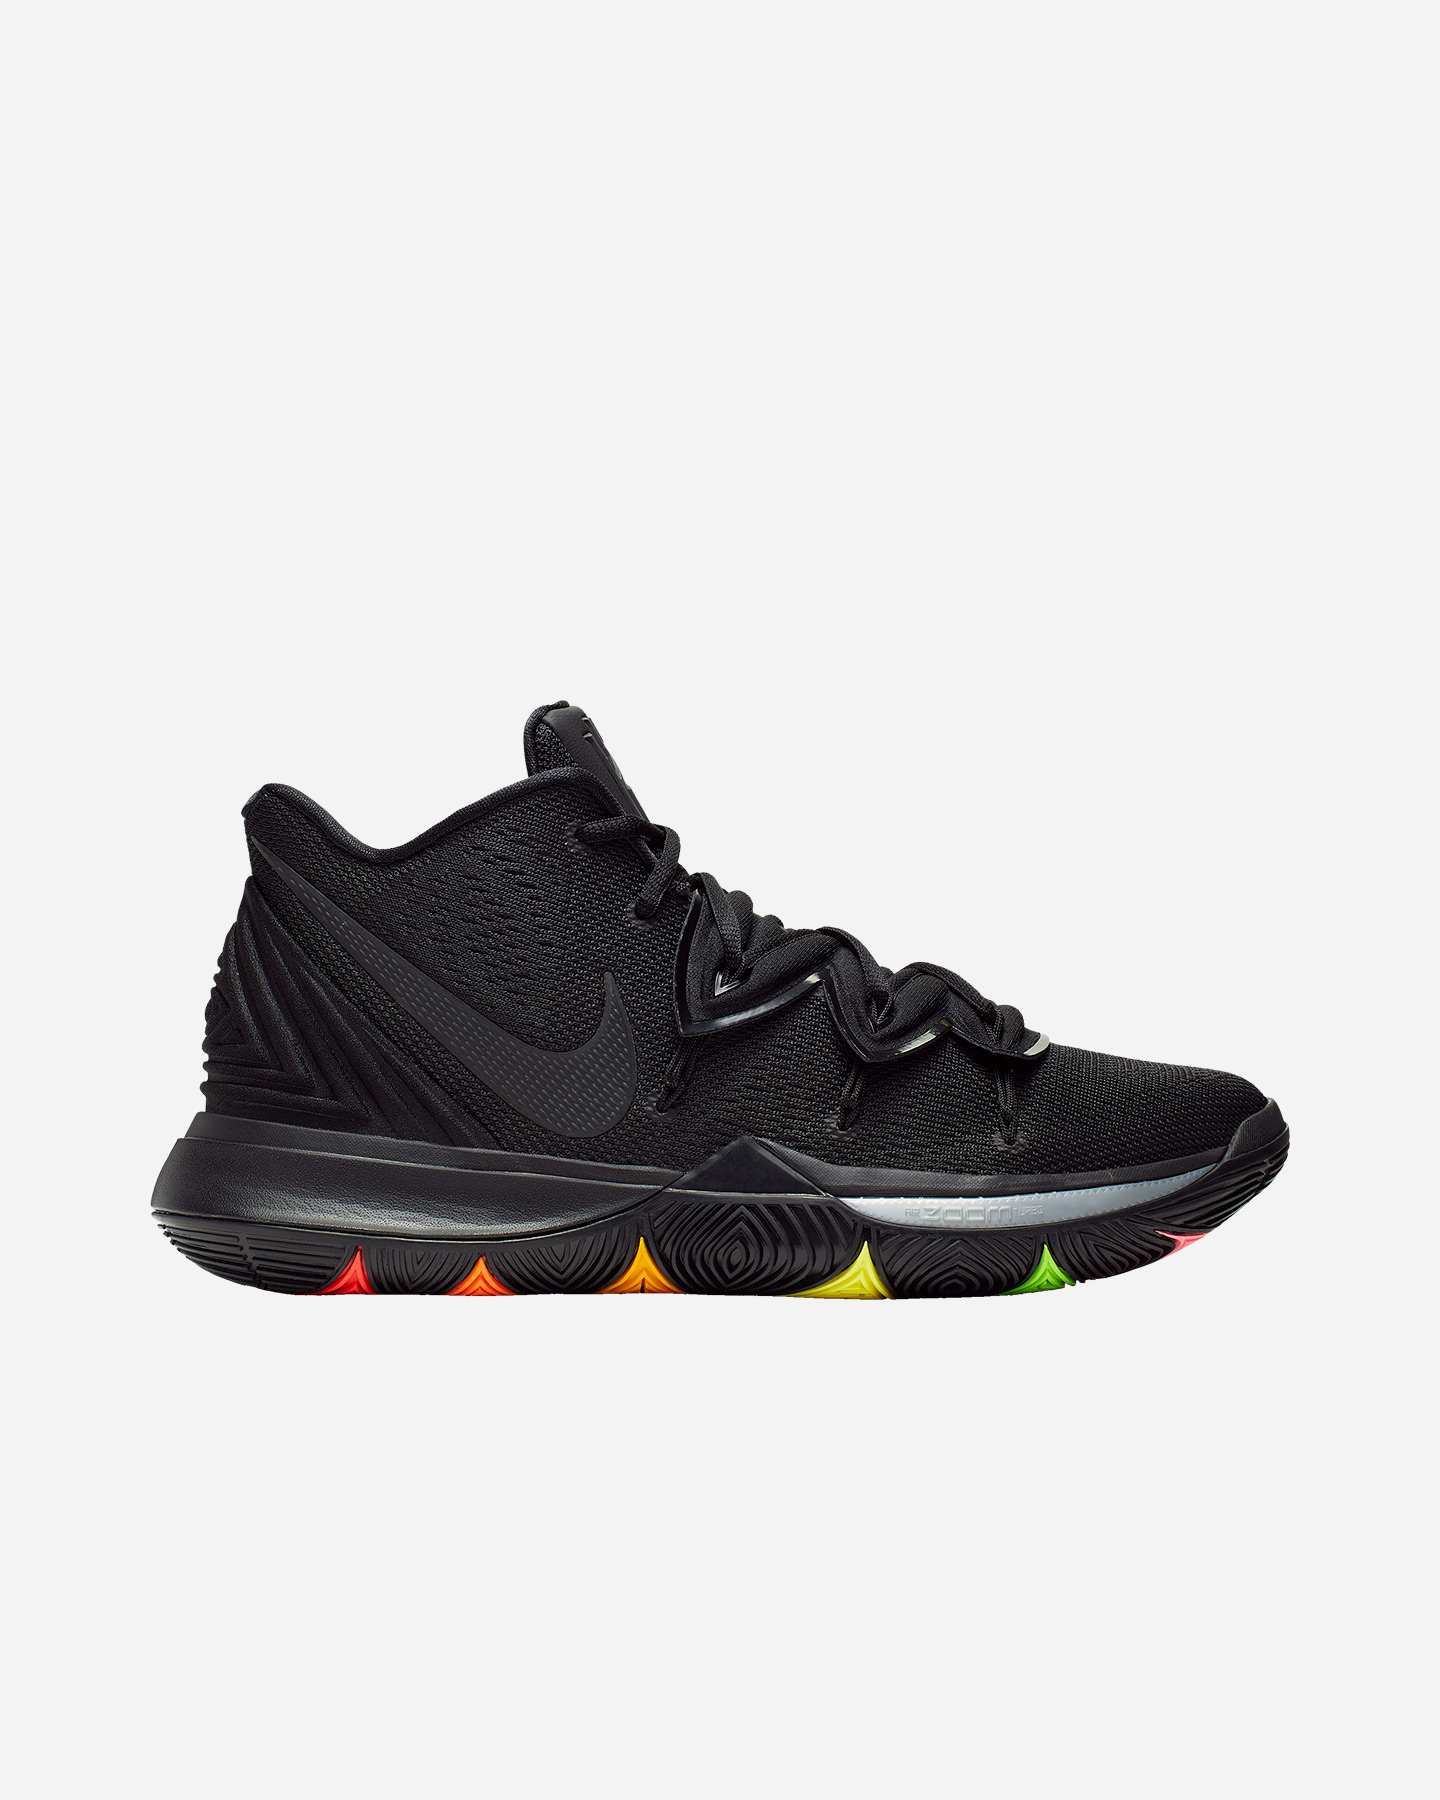 KYRIE 5 MID M